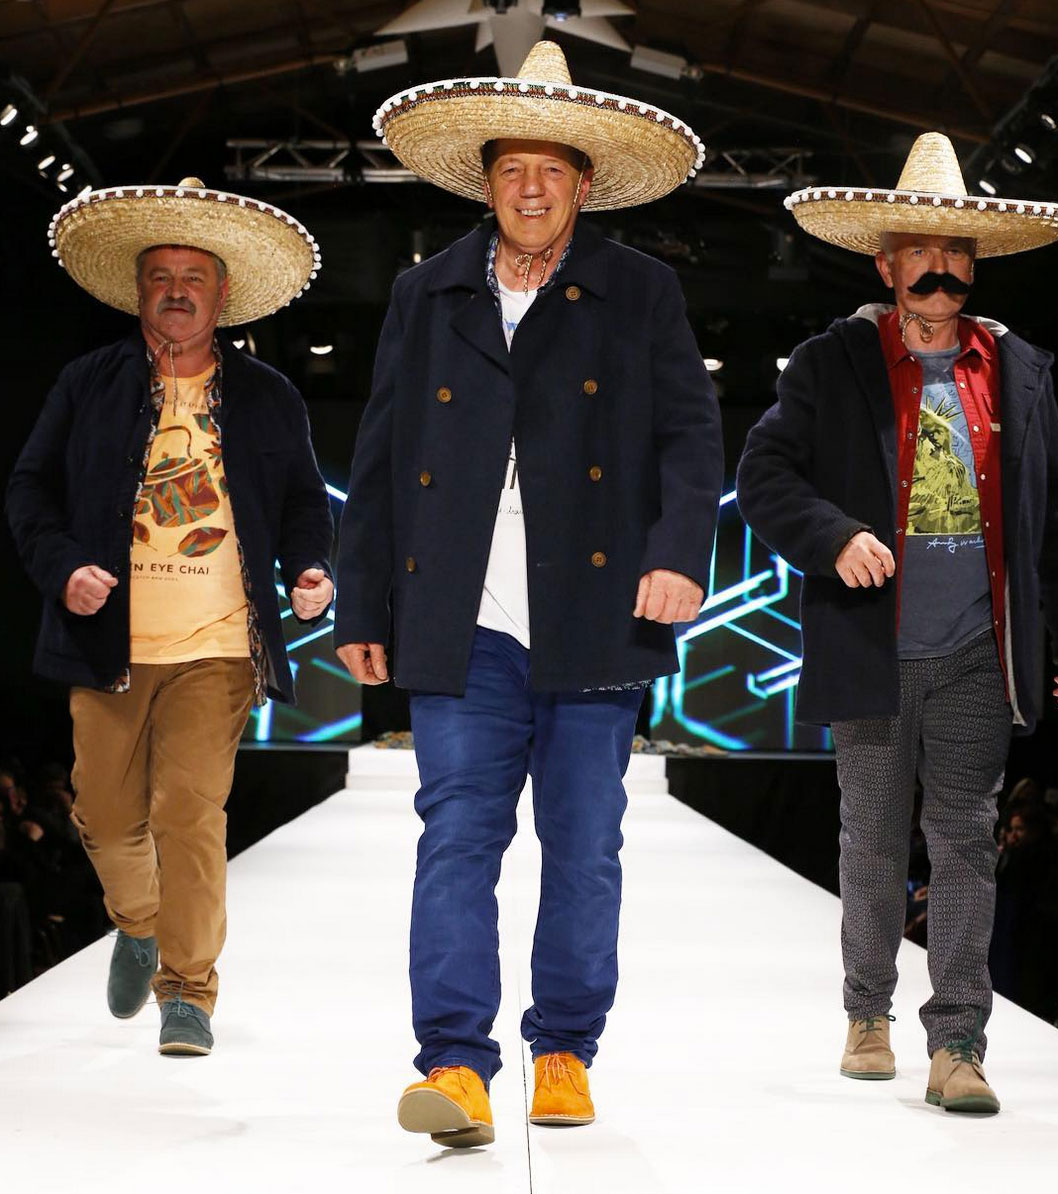 The three majors of Southland make a surprise appearance on the catwalk at the Hokonui Fashion Design Awards on Saturday night. (Mayor Tracy Hicks, Mayor Gary Tong, Mayor Tim Shadbolt)